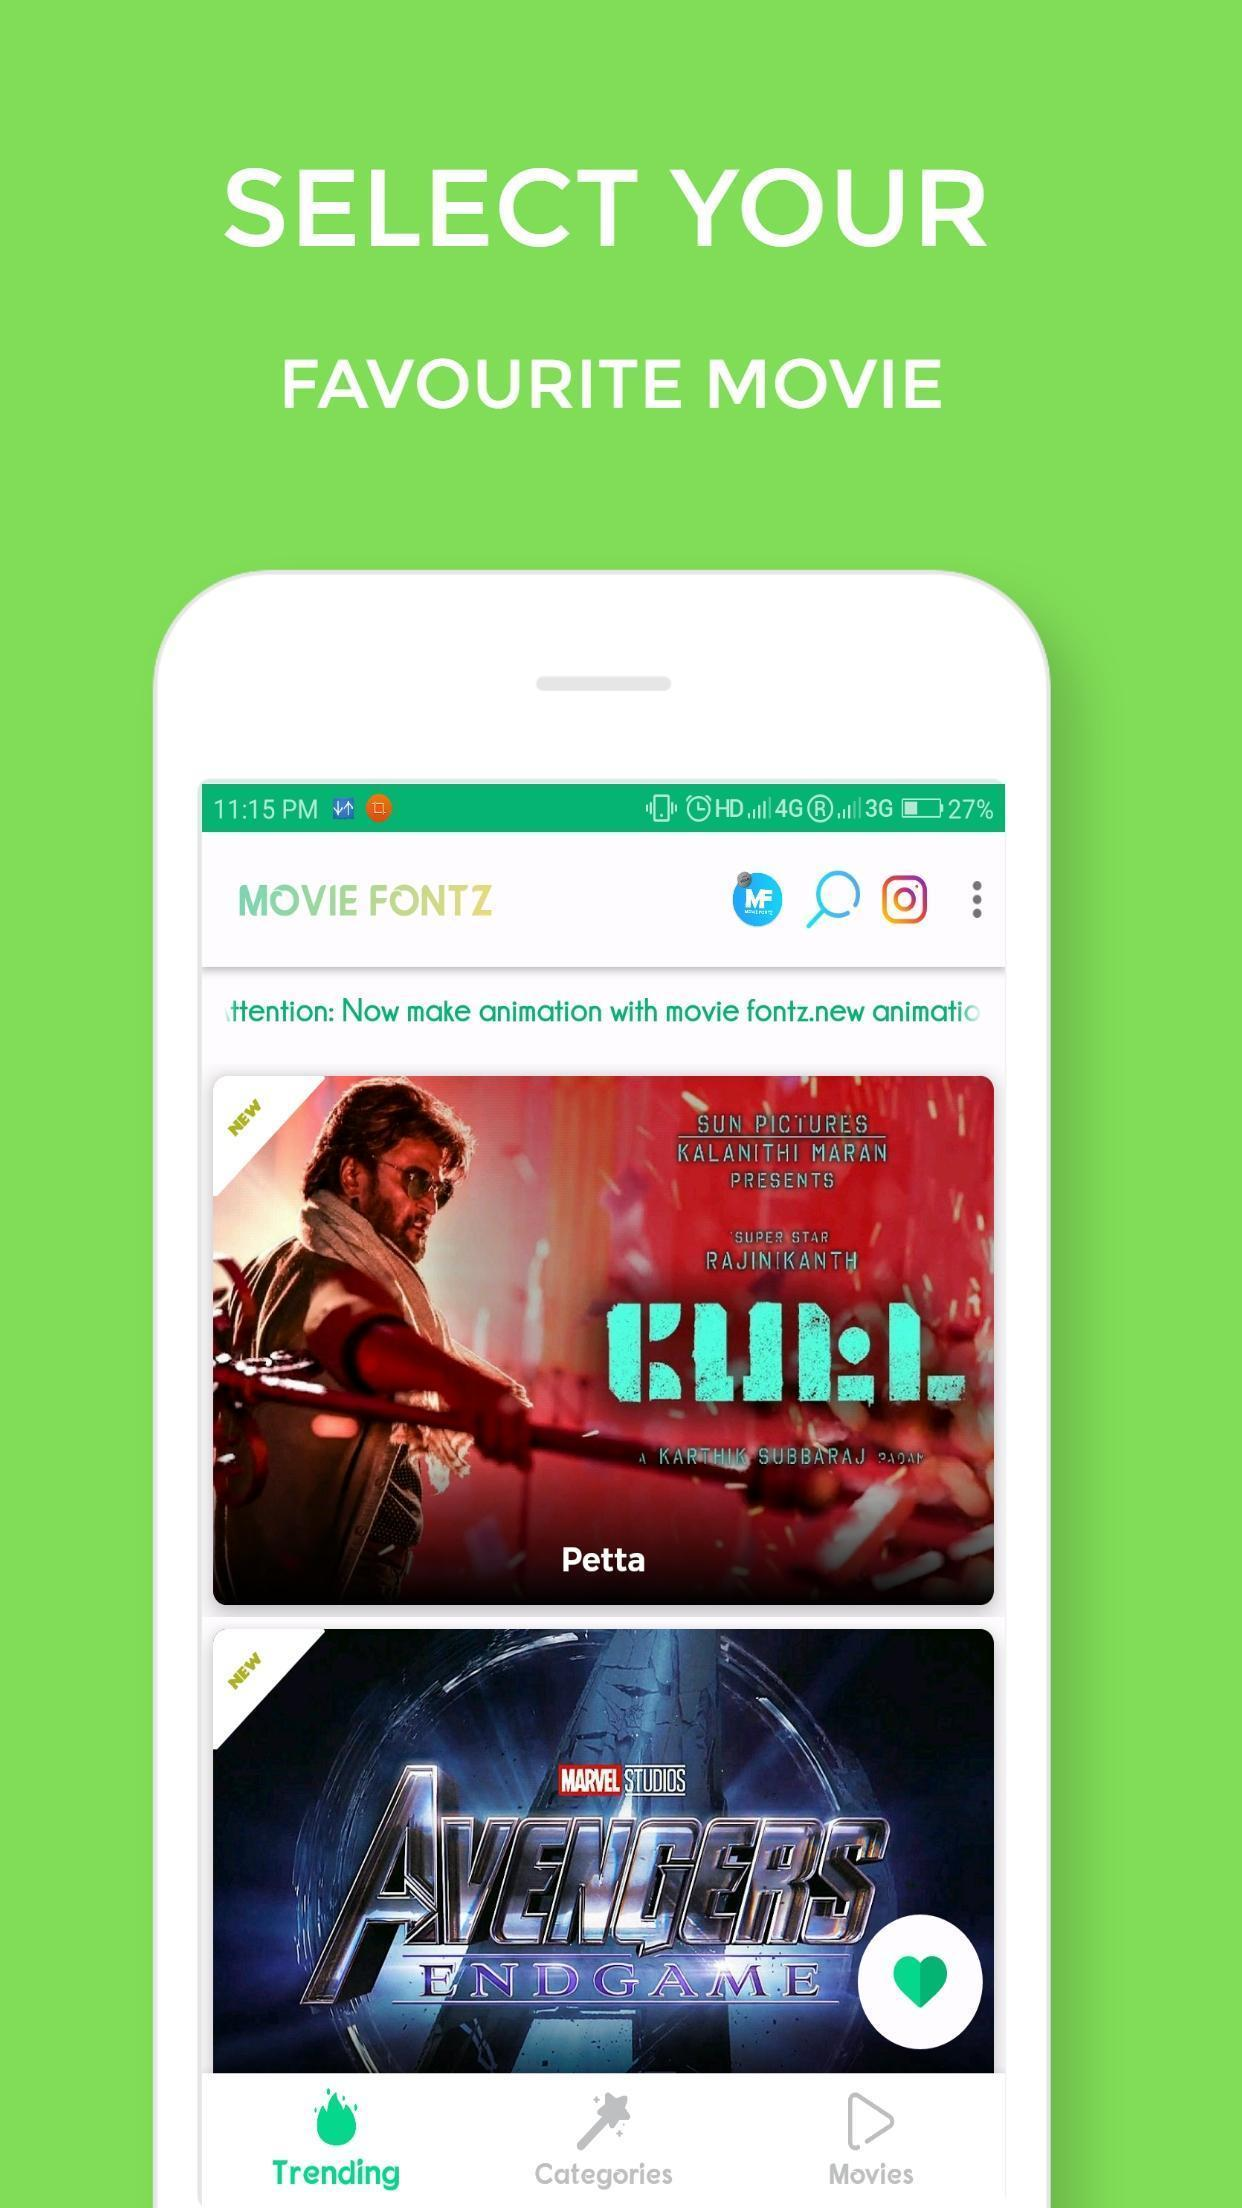 Movie Fontz (Movie Fonts) -Get all movie fonts for Android